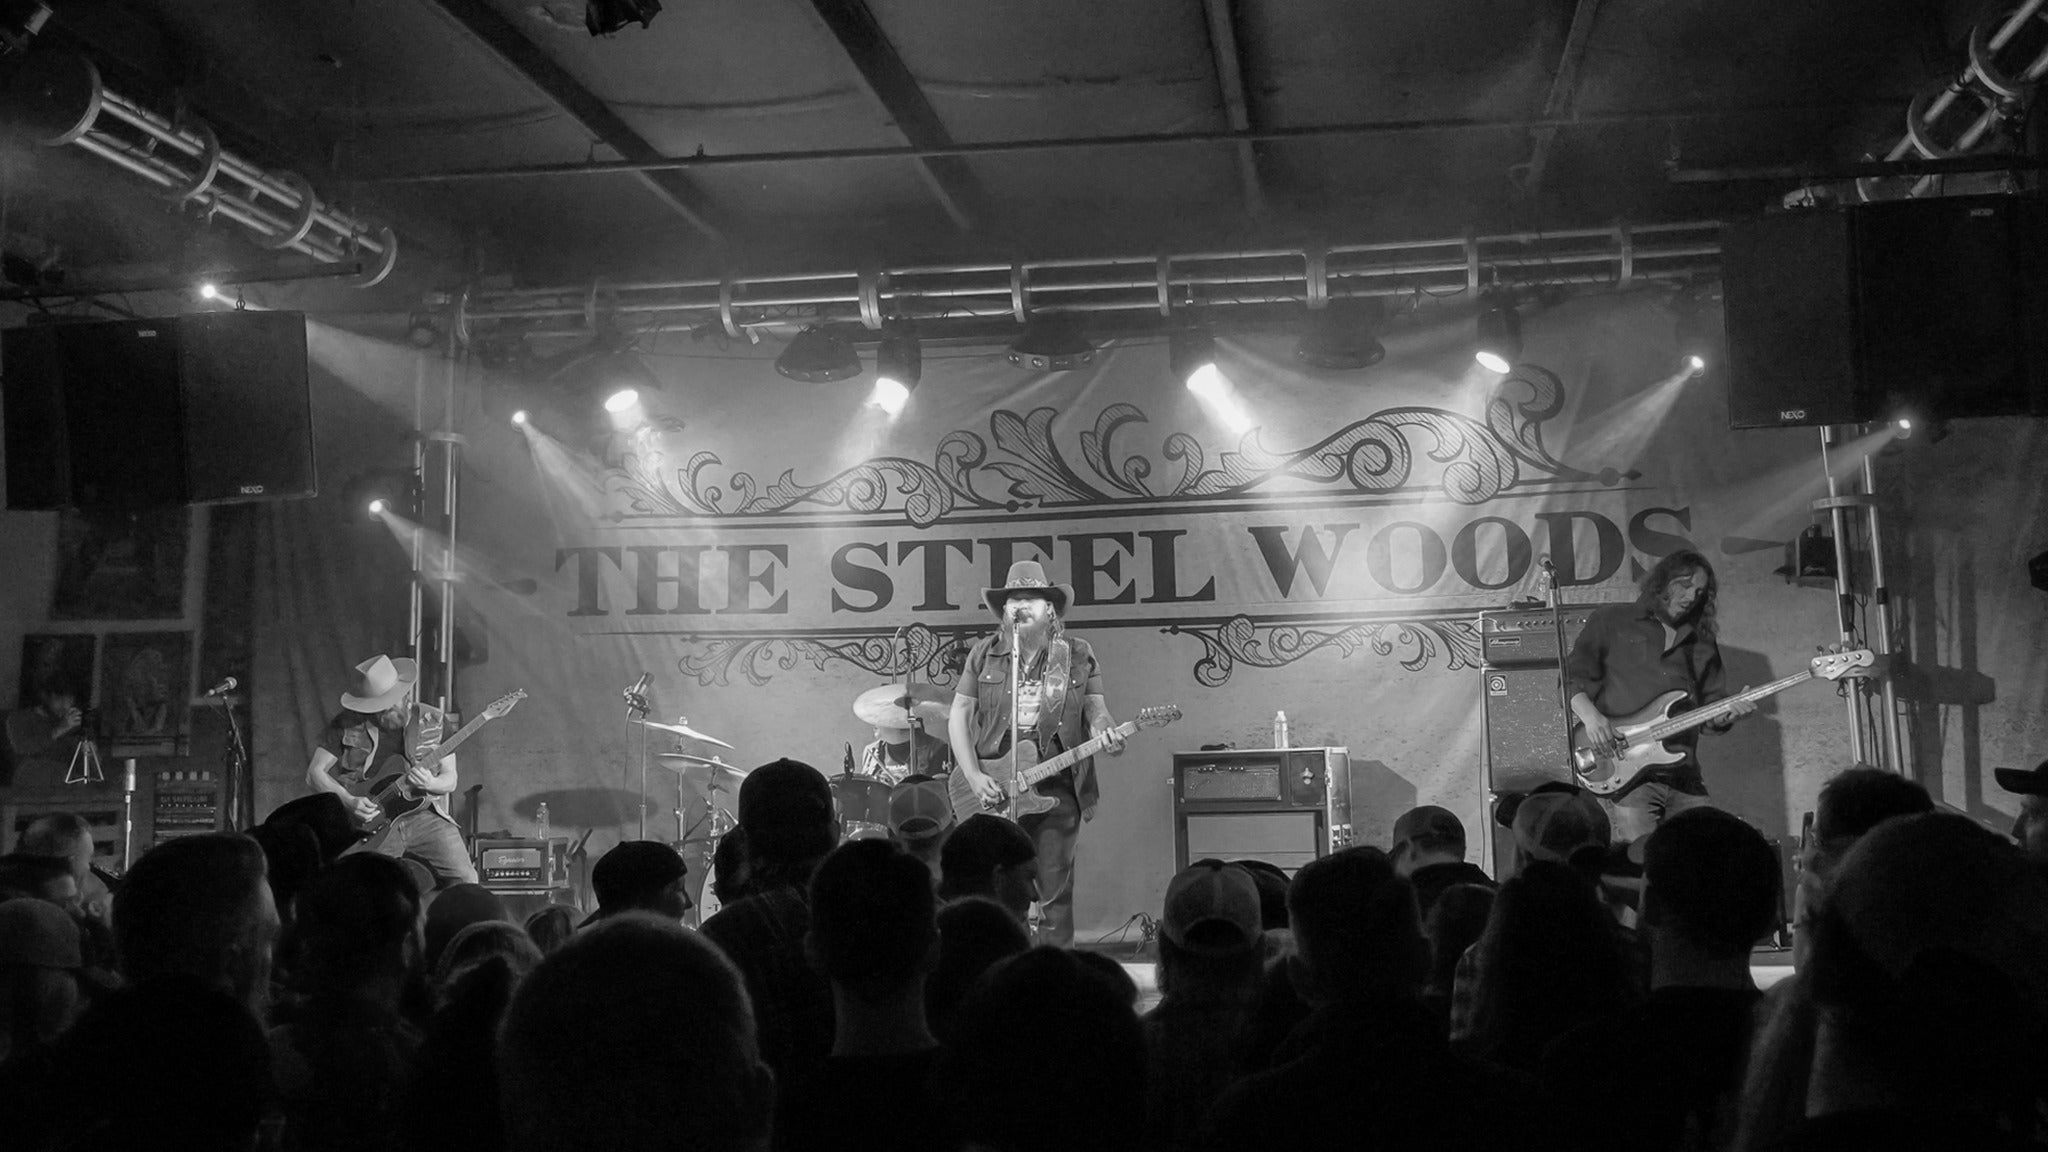 The Steel Woods